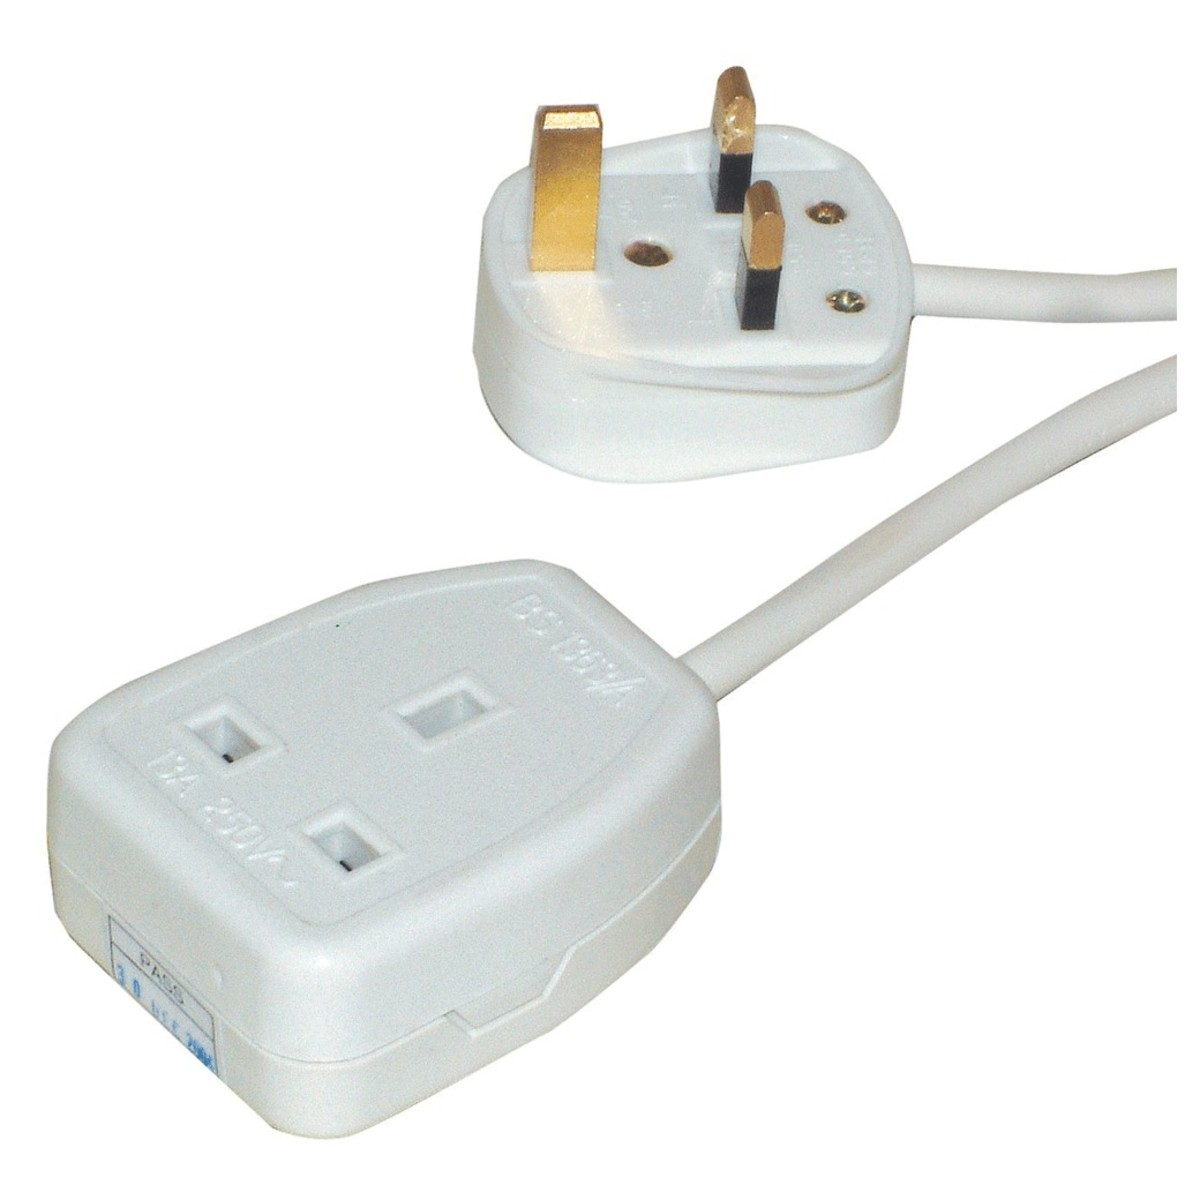 Image of Eagle Single Gang UK 13A 10m Extension Lead White